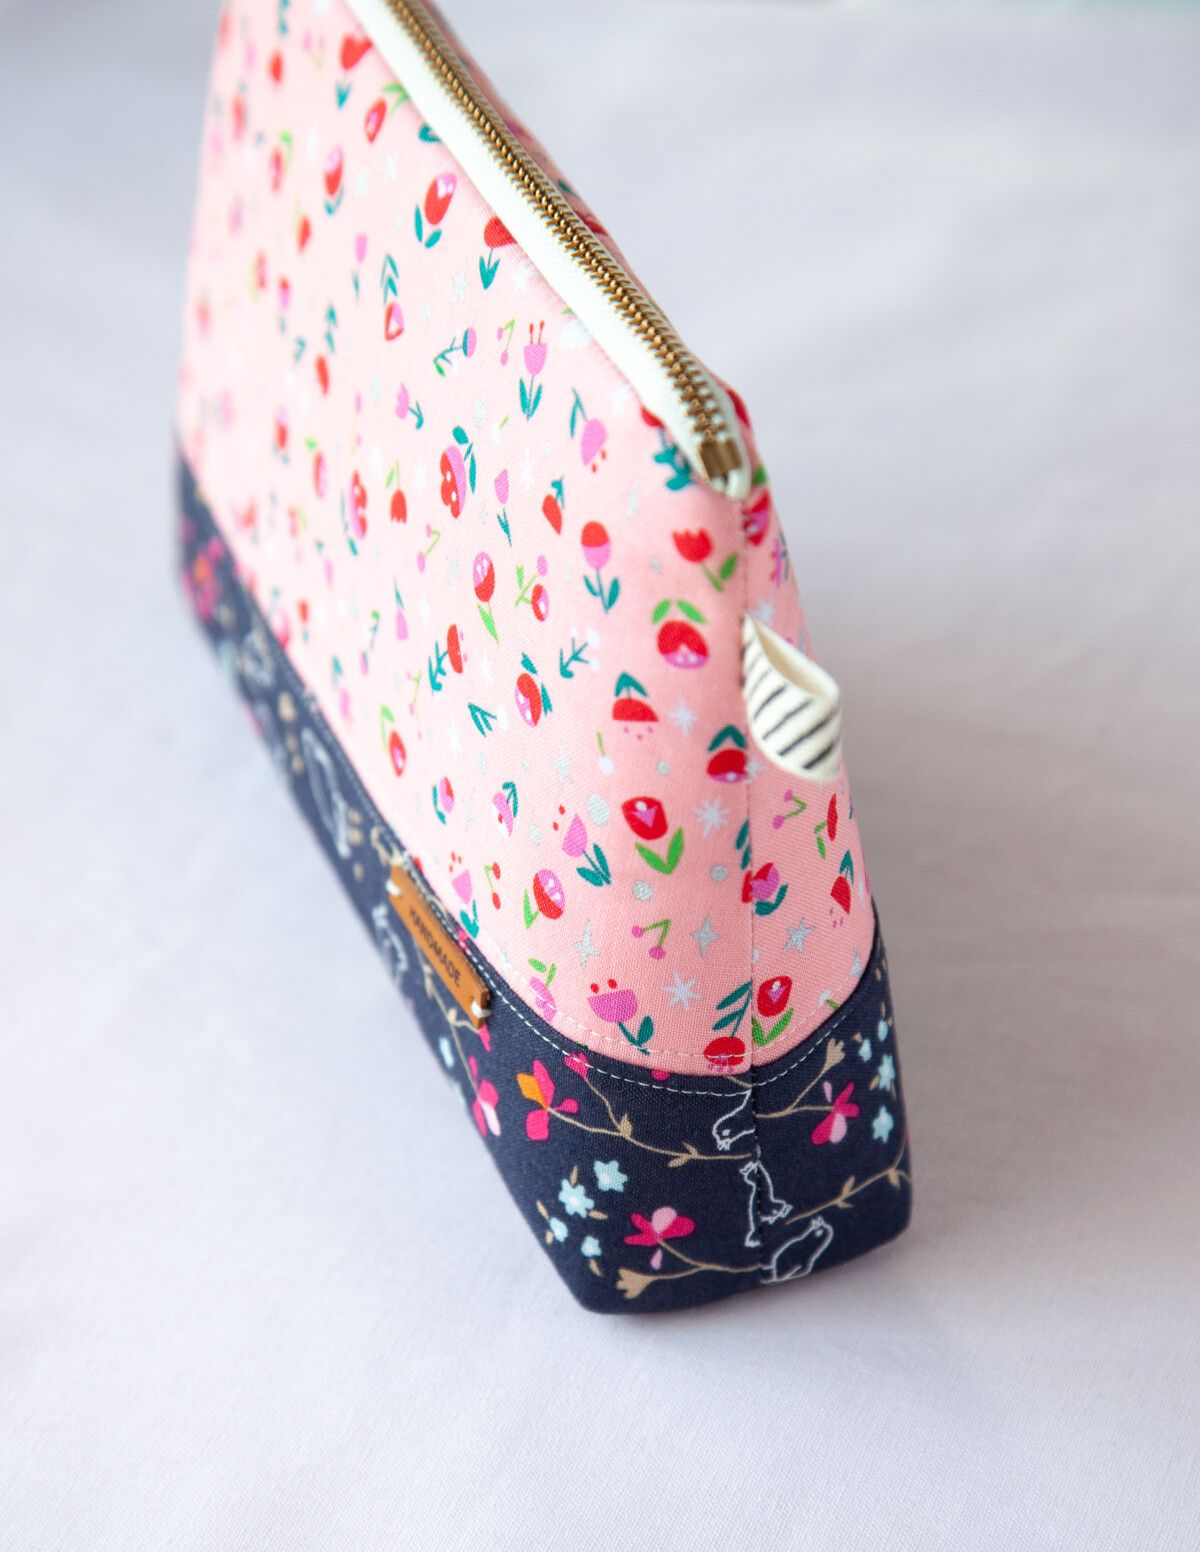 Diy Cosmetic Zipper Pouch Weallsew Diy Pouch No Zipper Cosmetic Bag Pattern Pouch Pattern